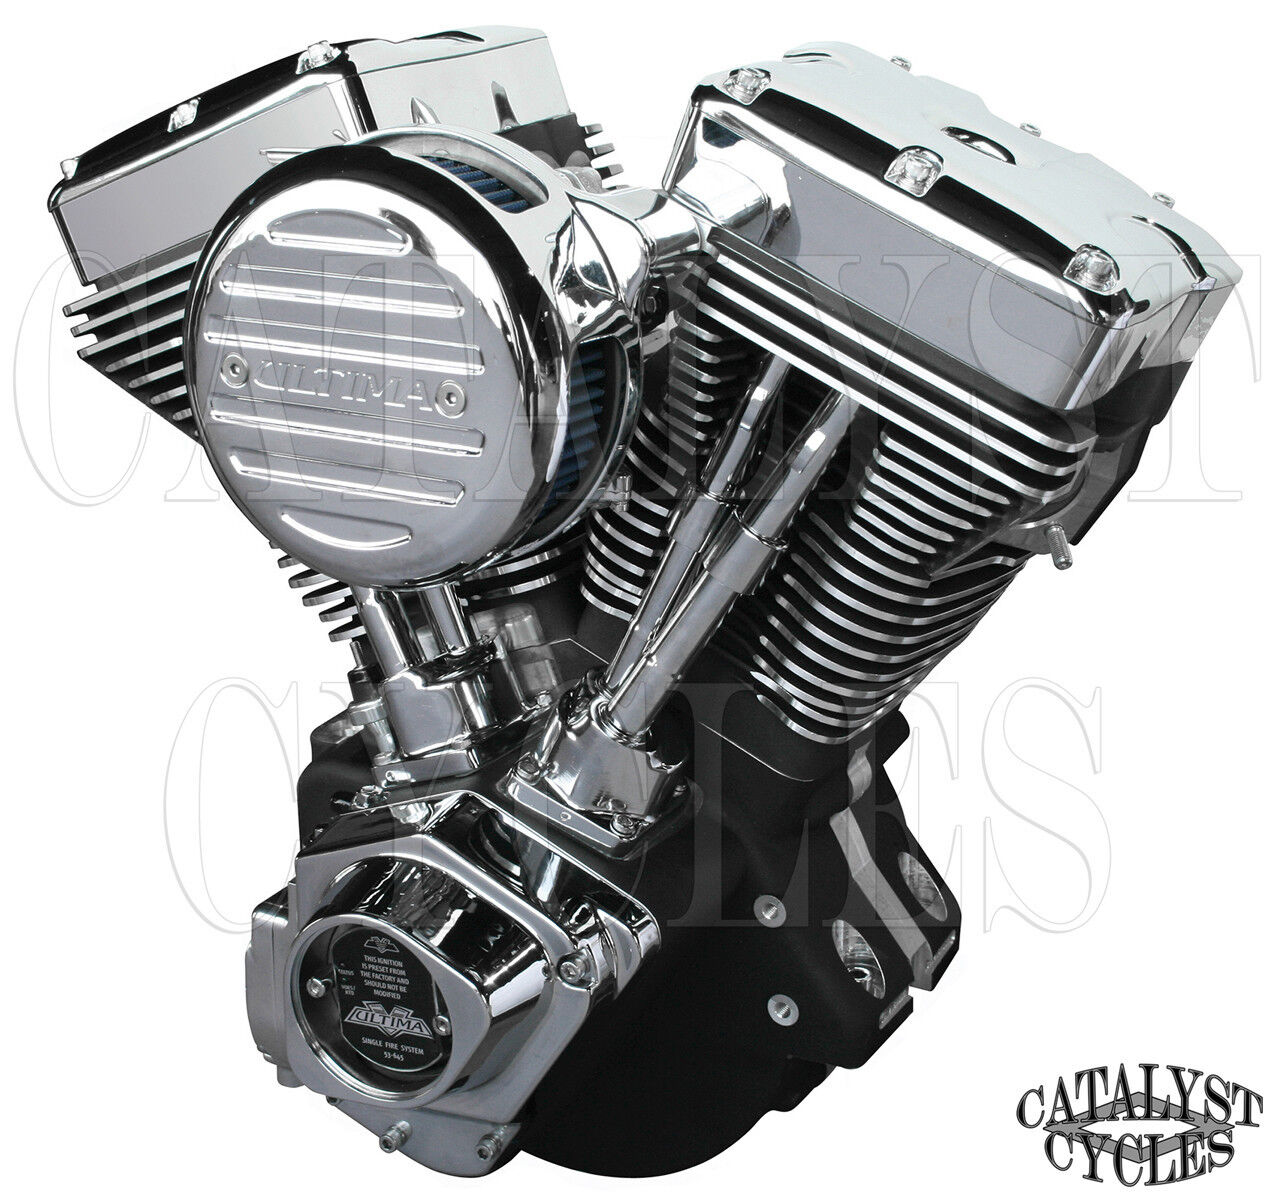 Black 120 Ultima Engine El Bruto Evolution Motor For Harley Evo Motorcycle Drawing Vquad And Method 1984 99 1 Of 1only 2 Available See More